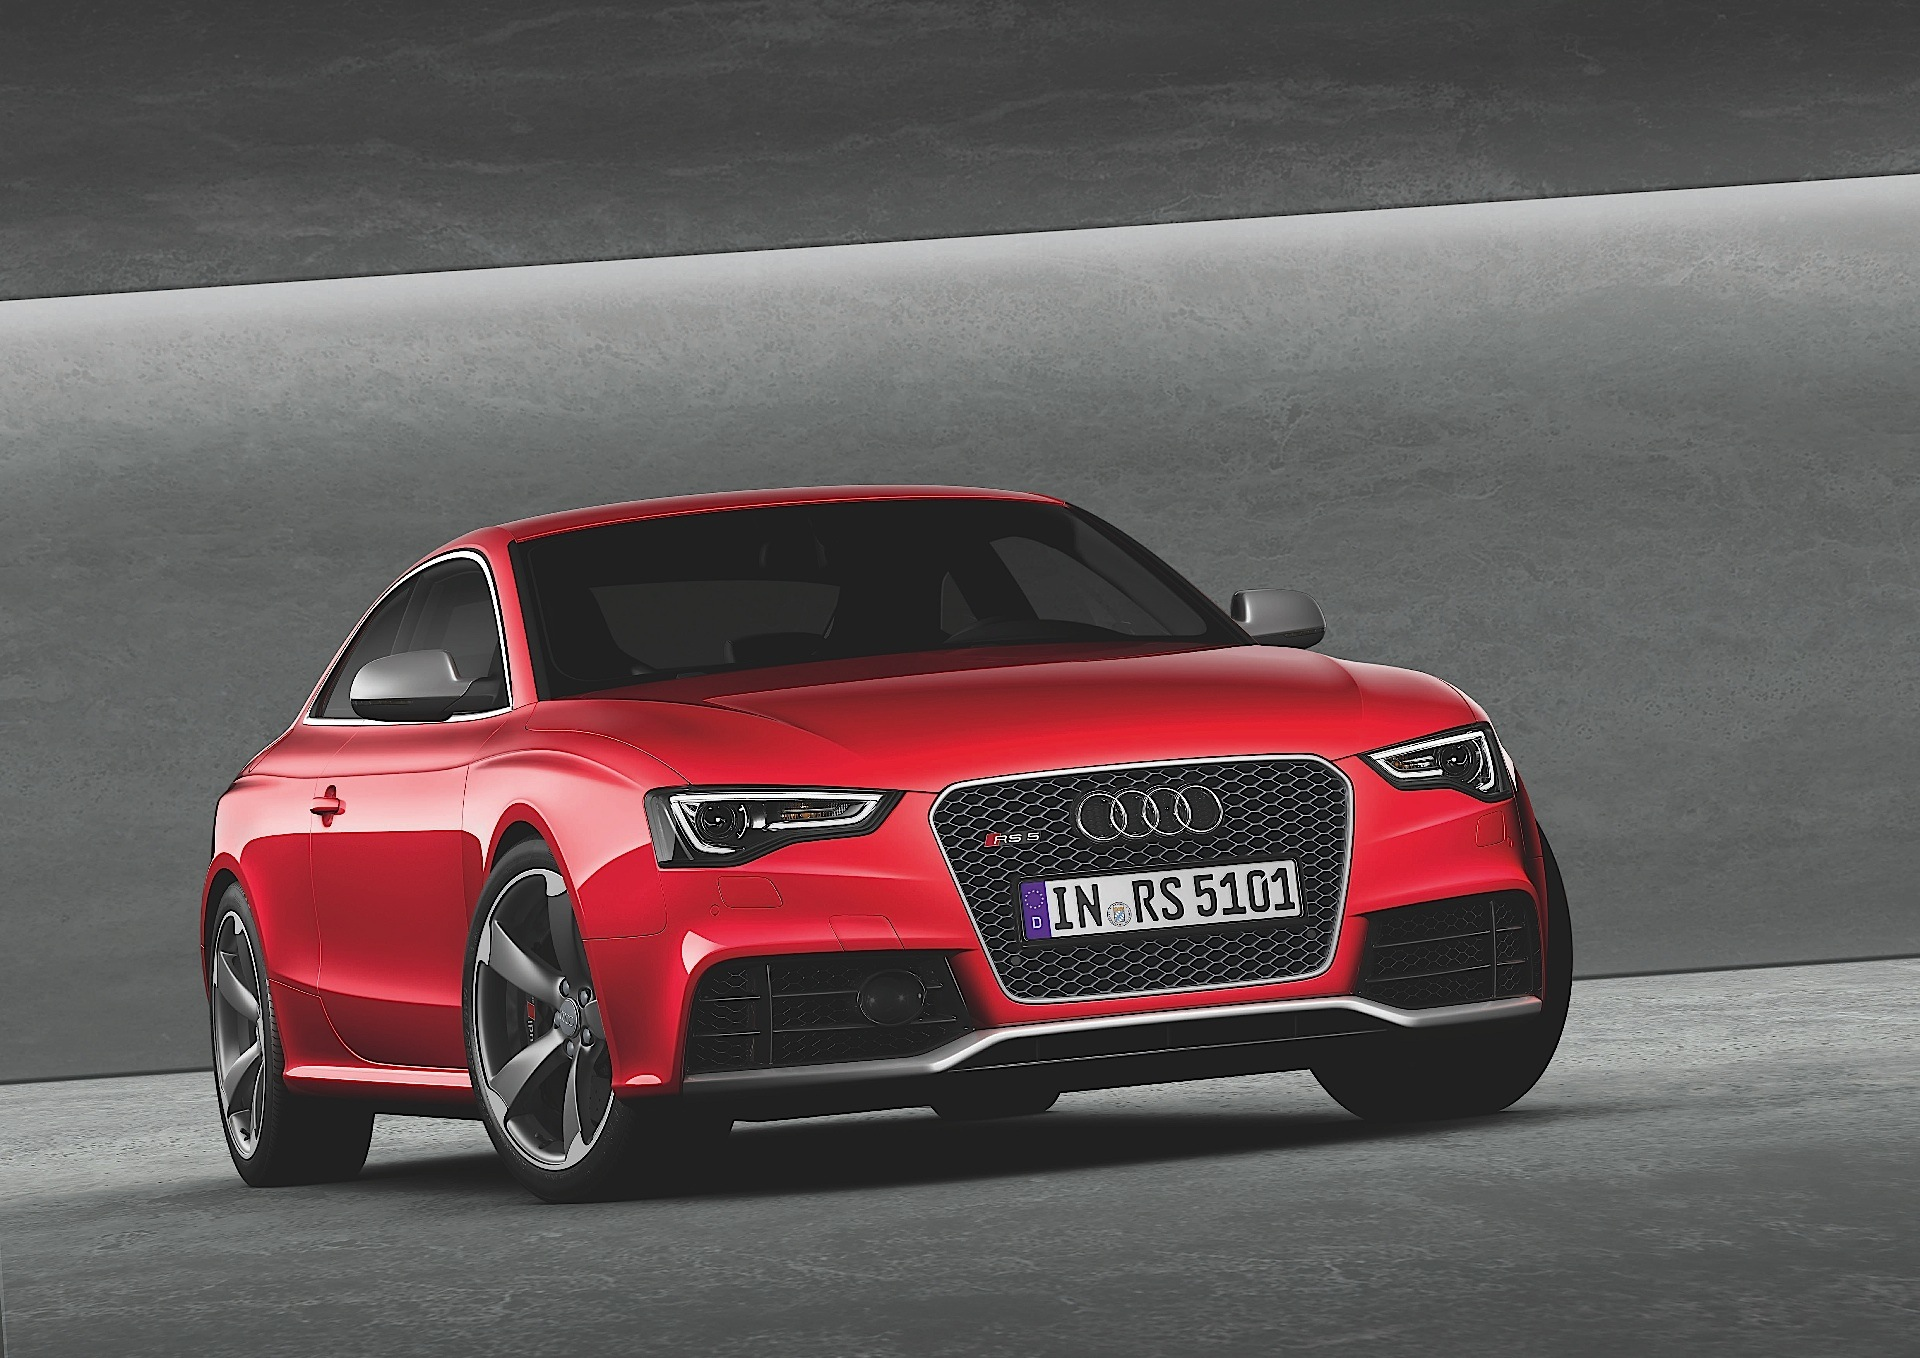 audi rs5 specs 2010 2011 2012 2013 2014 2015 2016 2017 autoevolution. Black Bedroom Furniture Sets. Home Design Ideas